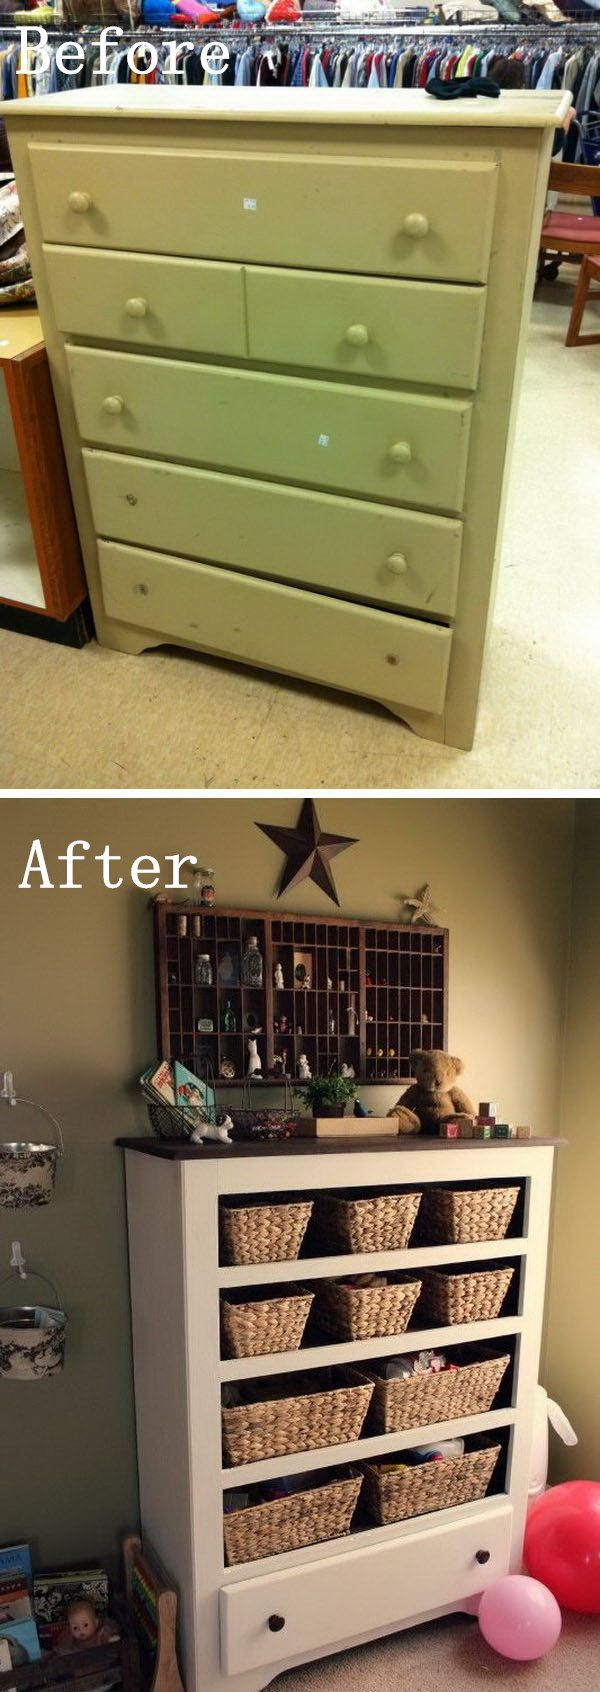 180 best images about repurposed furniture ideas on pinterest